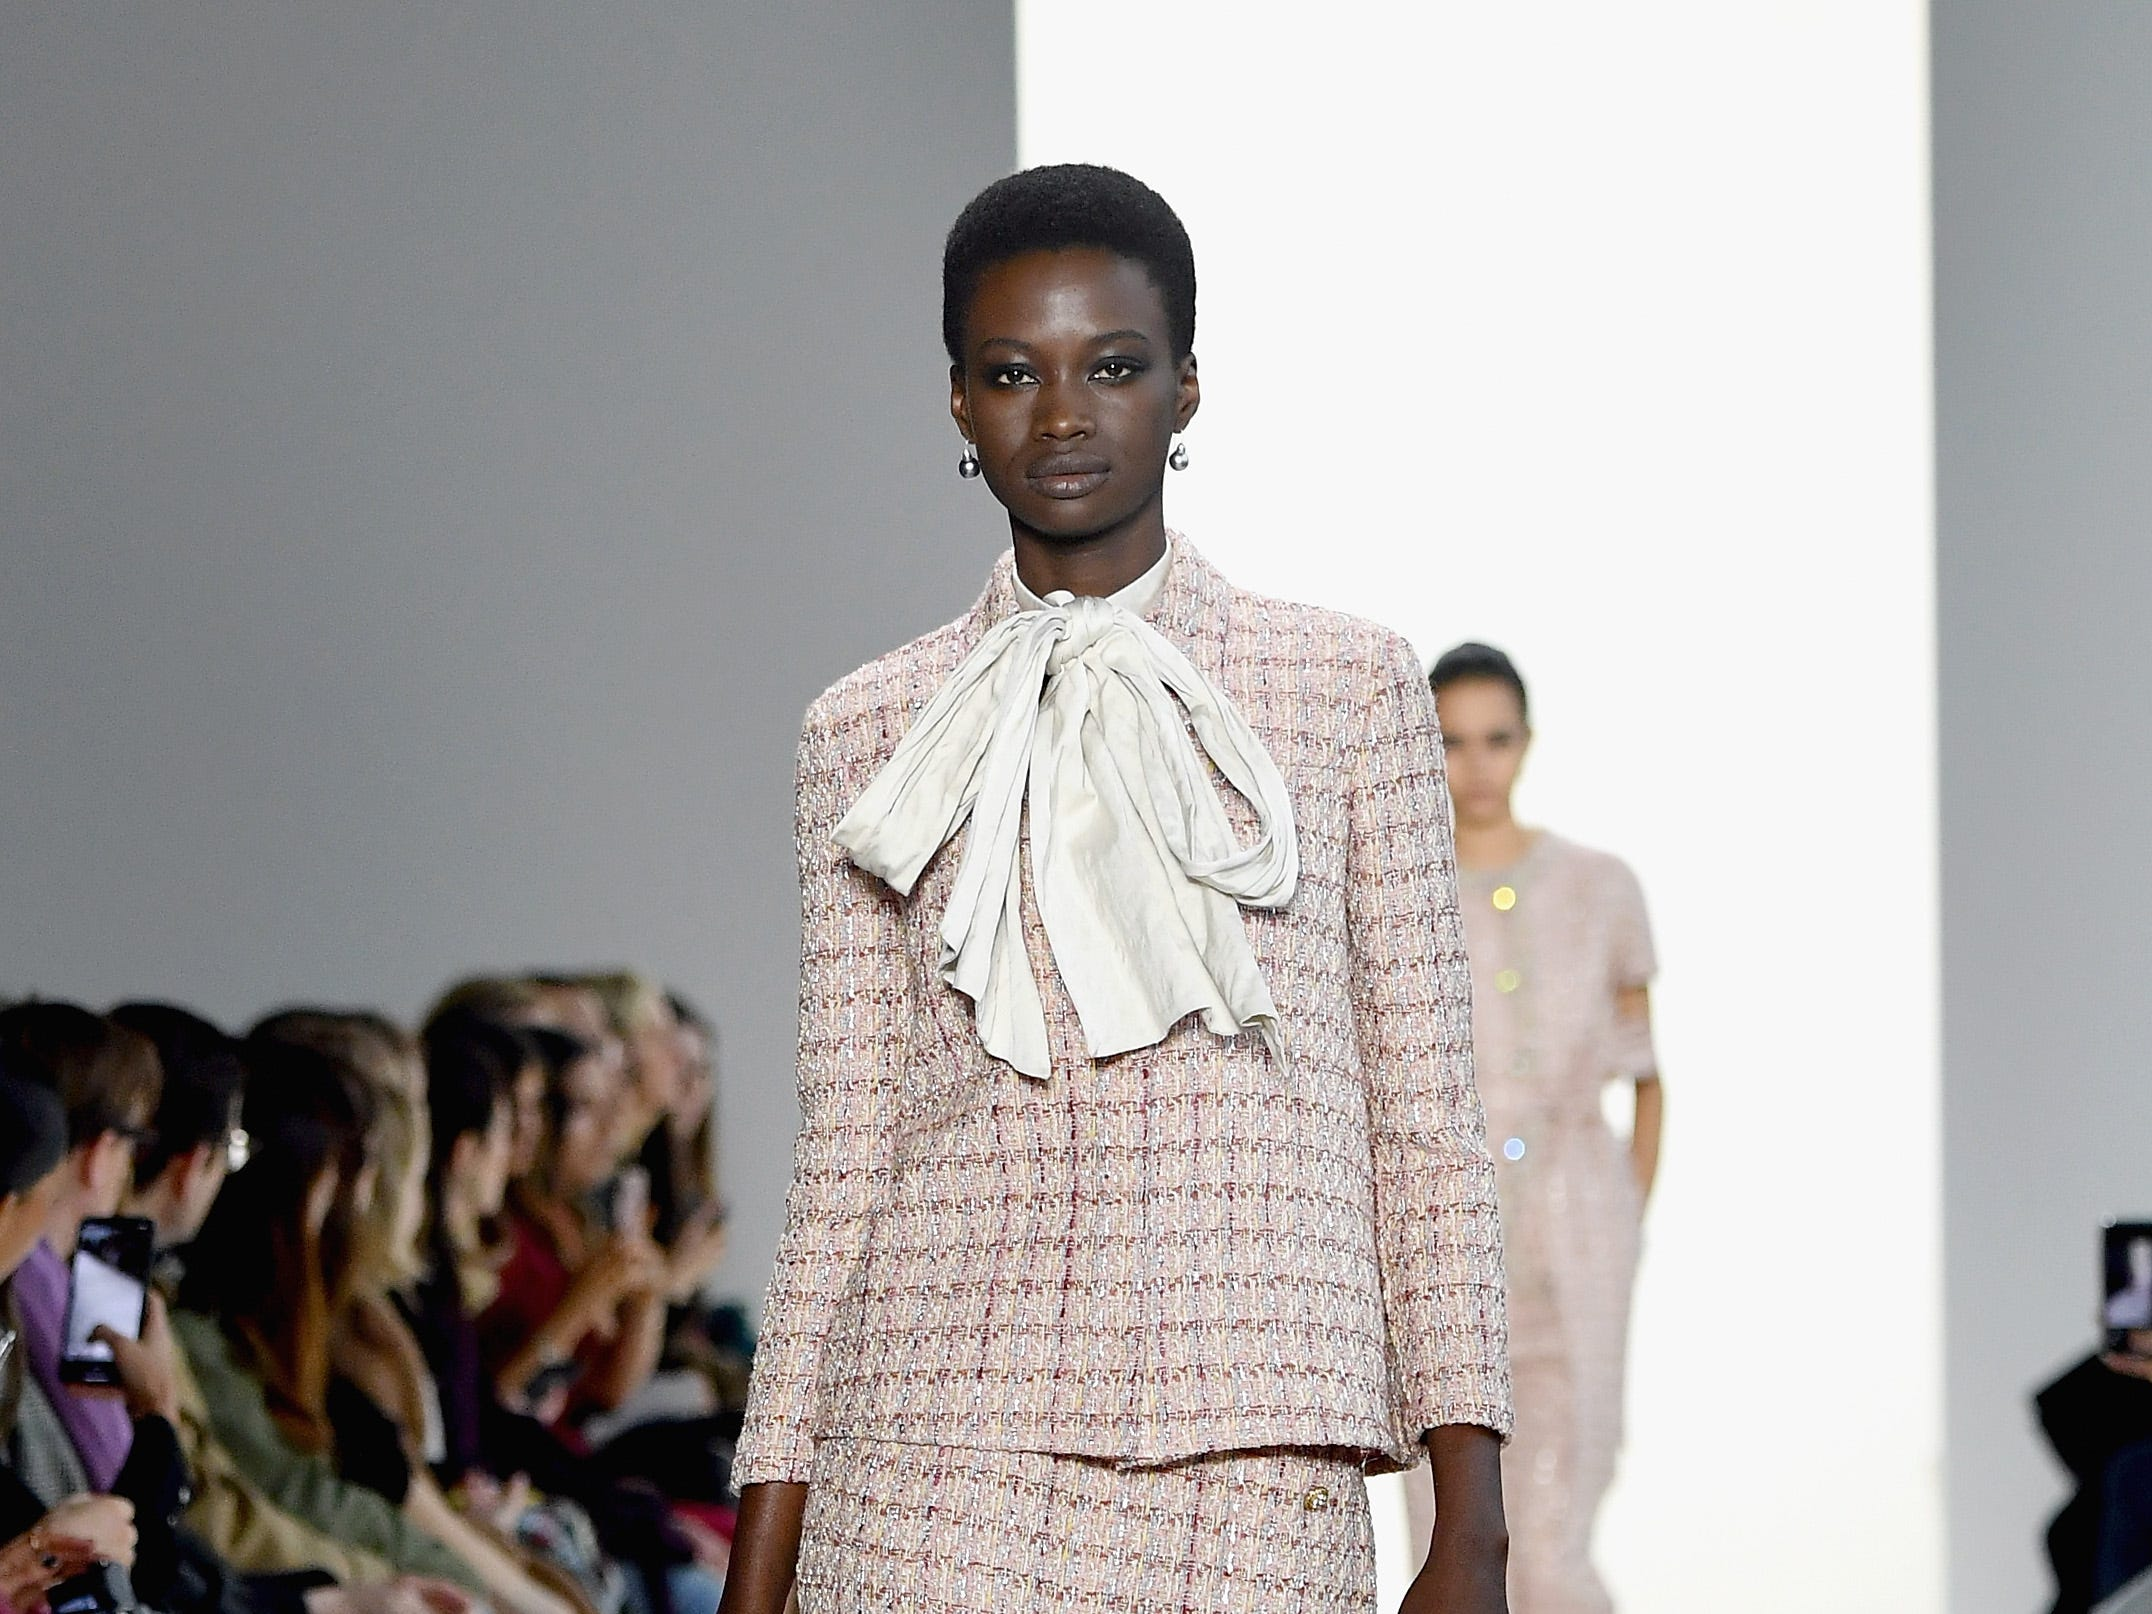 NEW YORK, NY - FEBRUARY 08:  A model walks the runway for the Brock Collection fashion show during New York Fashion Week: The Shows at Gallery I at Spring Studios on February 8, 2019 in New York City.  (Photo by Mike Coppola/Getty Images for NYFW: The Shows) ORG XMIT: 775289359 ORIG FILE ID: 1095510640